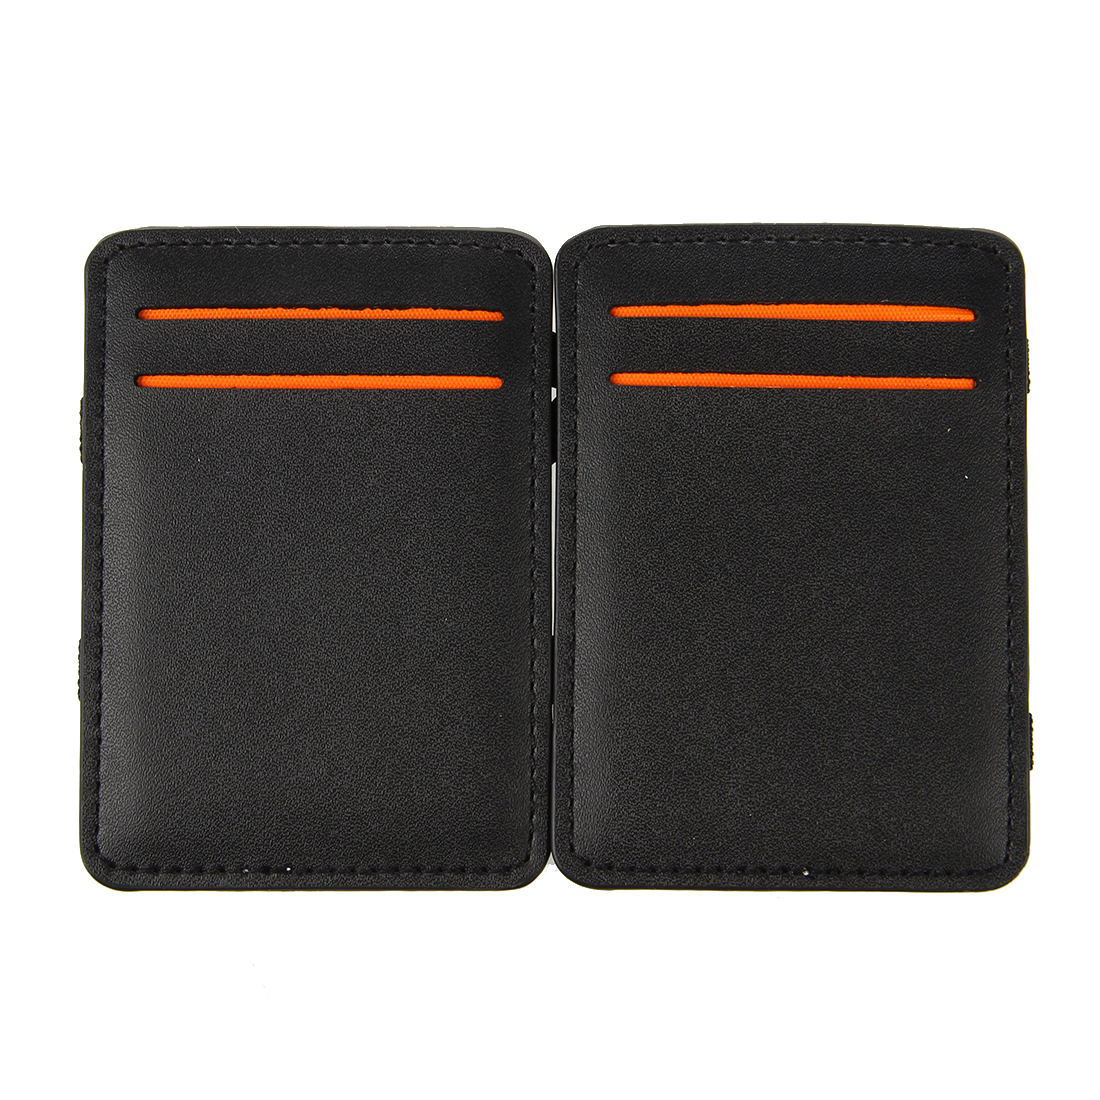 Mens-Magic-Flip-Wallet-Money-Clip-Bifold-Slim-Credit-Card-Holder-Purse-A7M7 thumbnail 4